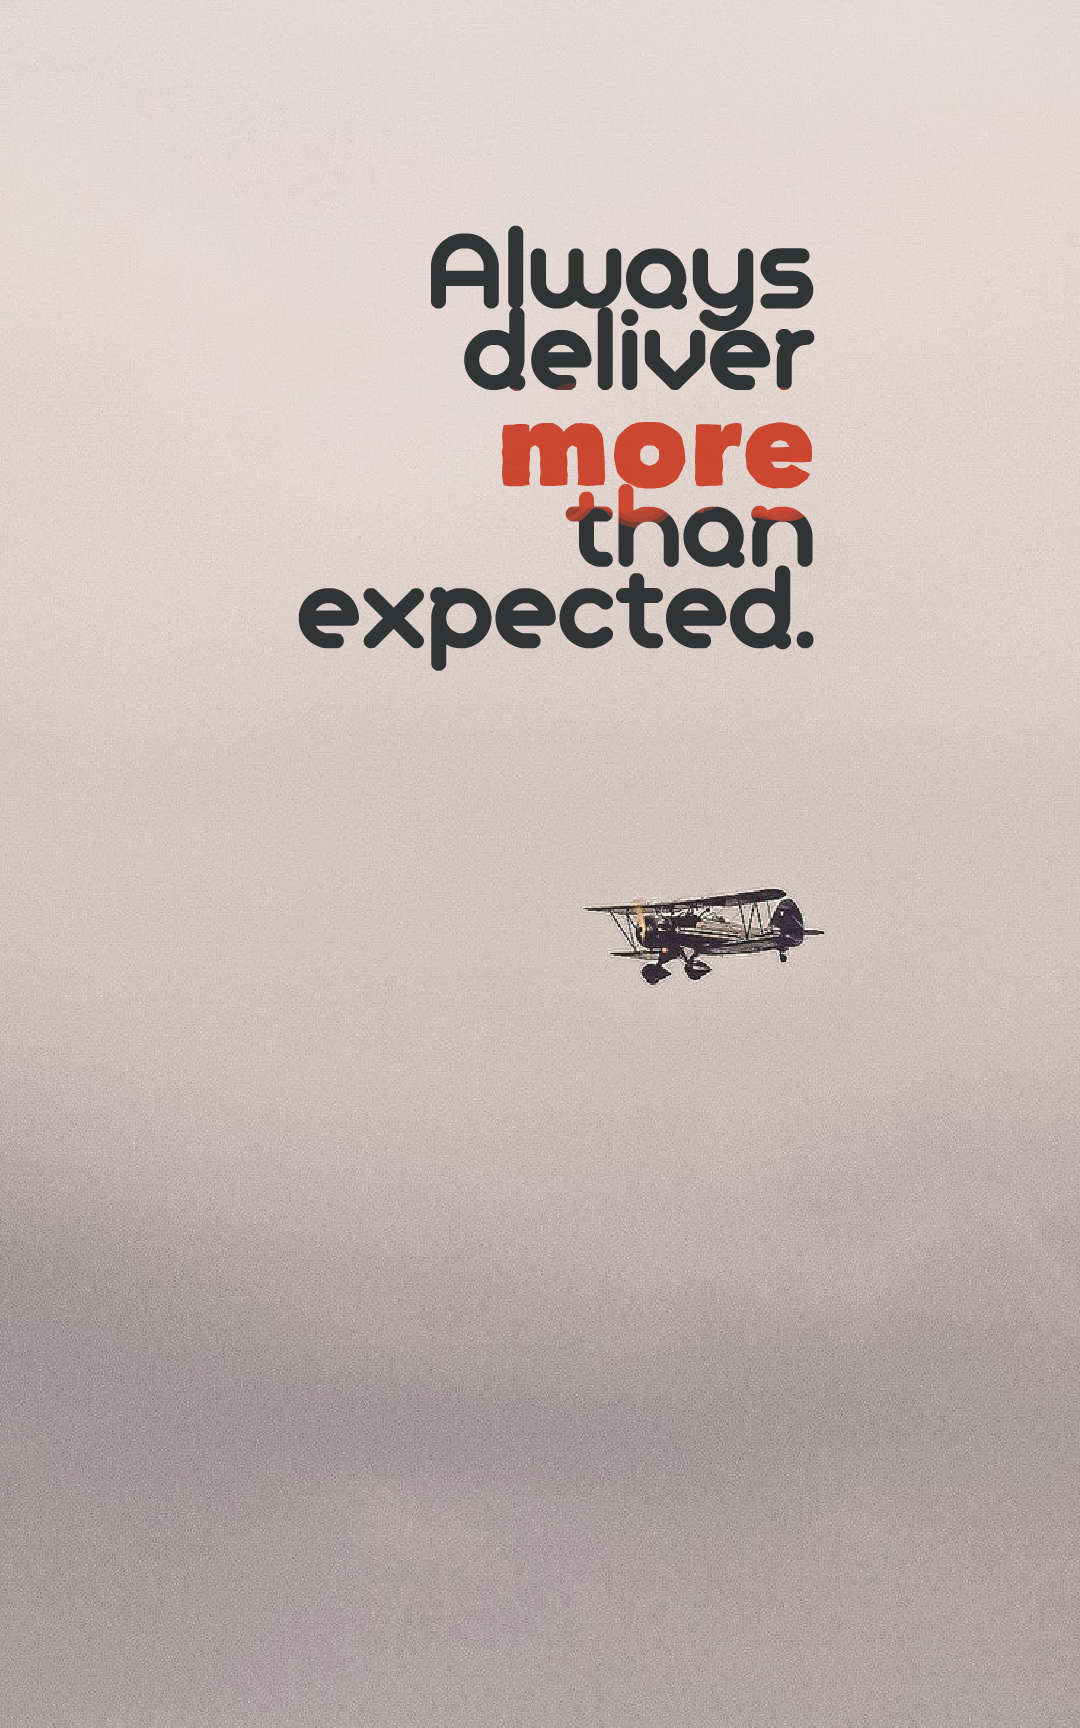 Quotes image of Always deliver more than expected.